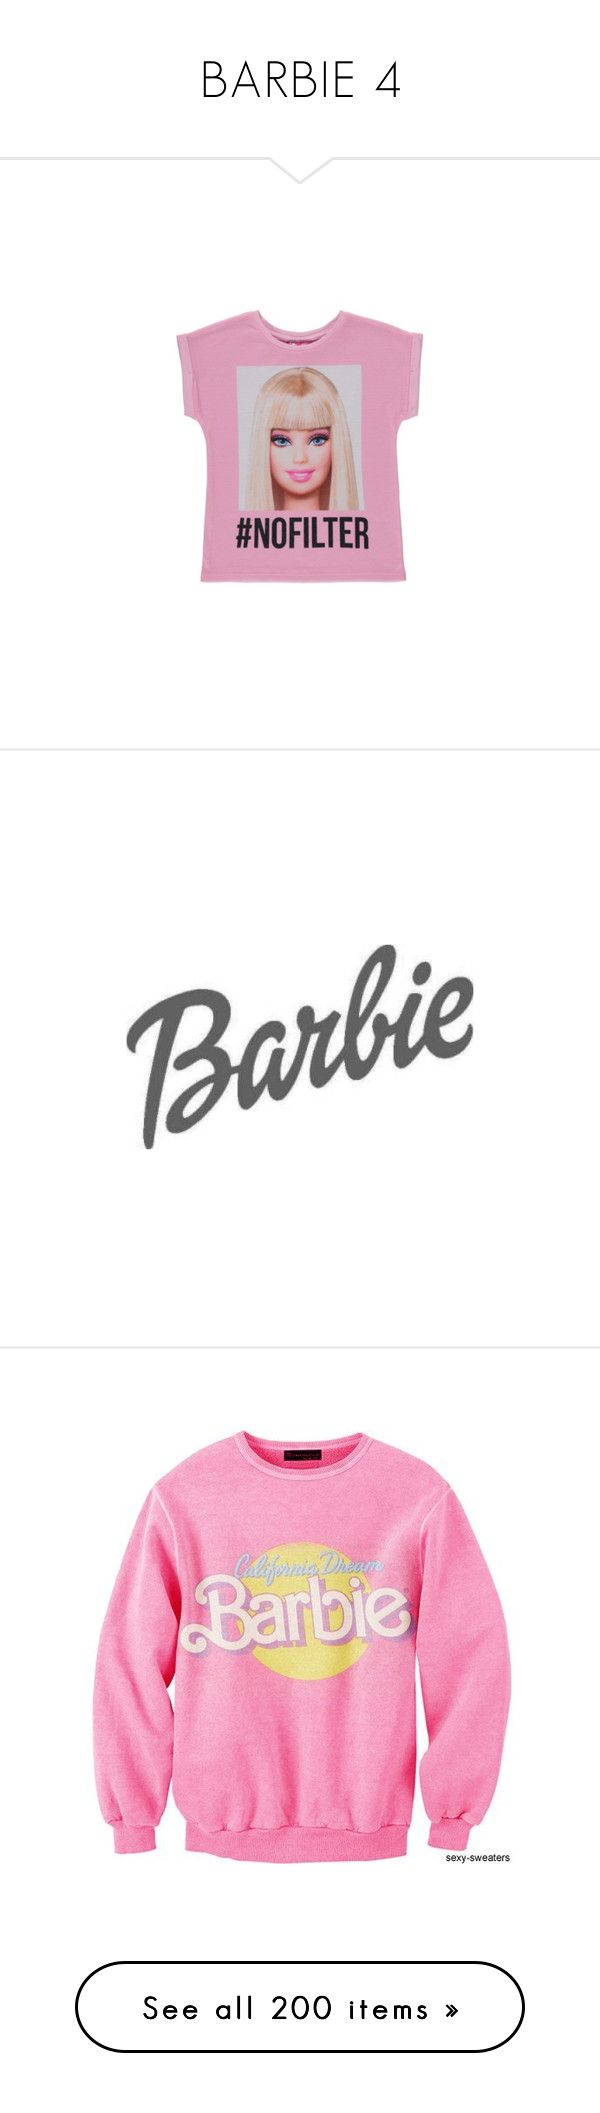 """BARBIE 4"" by paulagriggs ❤ liked on Polyvore featuring barbie, tees, pink, backgrounds, tops, light grey, stretch top, short sleeve polo shirts, short sleeve tops and rayon tops"